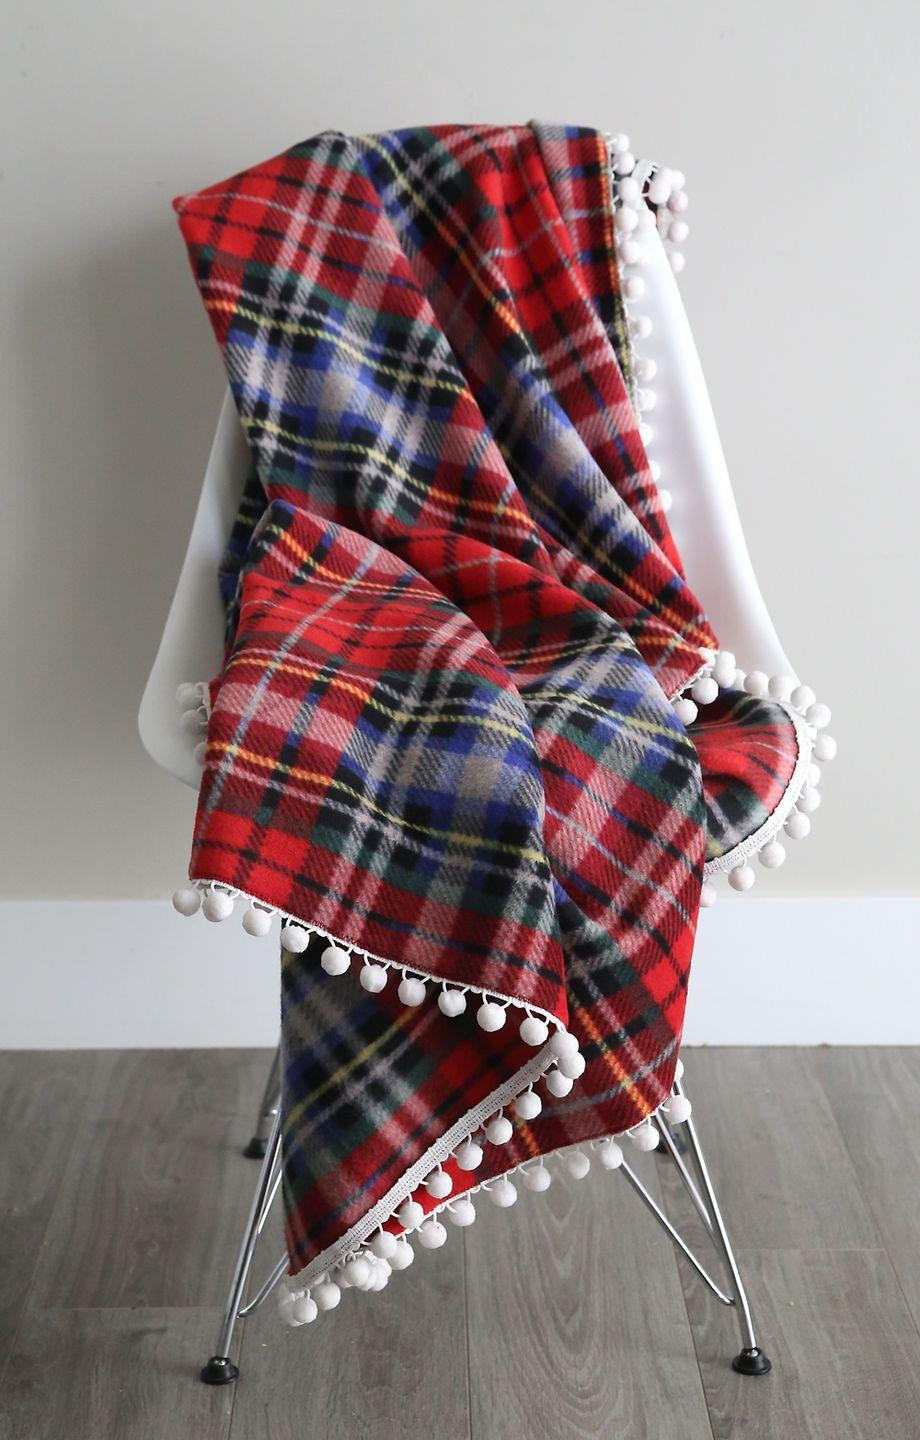 """<p>Give the gift of warmth this Christmas with a cozy fleece blanket you can make yourself. </p><p><strong>Get the tutorial at <a href=""""https://www.itsalwaysautumn.com/easy-beautiful-diy-fleece-blankets.html"""" rel=""""nofollow noopener"""" target=""""_blank"""" data-ylk=""""slk:It's Always Autumn"""" class=""""link rapid-noclick-resp"""">It's Always Autumn</a>.</strong></p><p><strong><strong><a class=""""link rapid-noclick-resp"""" href=""""https://go.redirectingat.com?id=74968X1596630&url=https%3A%2F%2Fwww.joann.com%2Fluxe-fleece-fabric-59-bright-gray-heathered-plaids%2F15149826.html&sref=https%3A%2F%2Fwww.countryliving.com%2Fdiy-crafts%2Ftips%2Fg645%2Fcrafty-christmas-presents-ideas%2F"""" rel=""""nofollow noopener"""" target=""""_blank"""" data-ylk=""""slk:SHOP FLEECE"""">SHOP FLEECE</a></strong><br></strong></p>"""